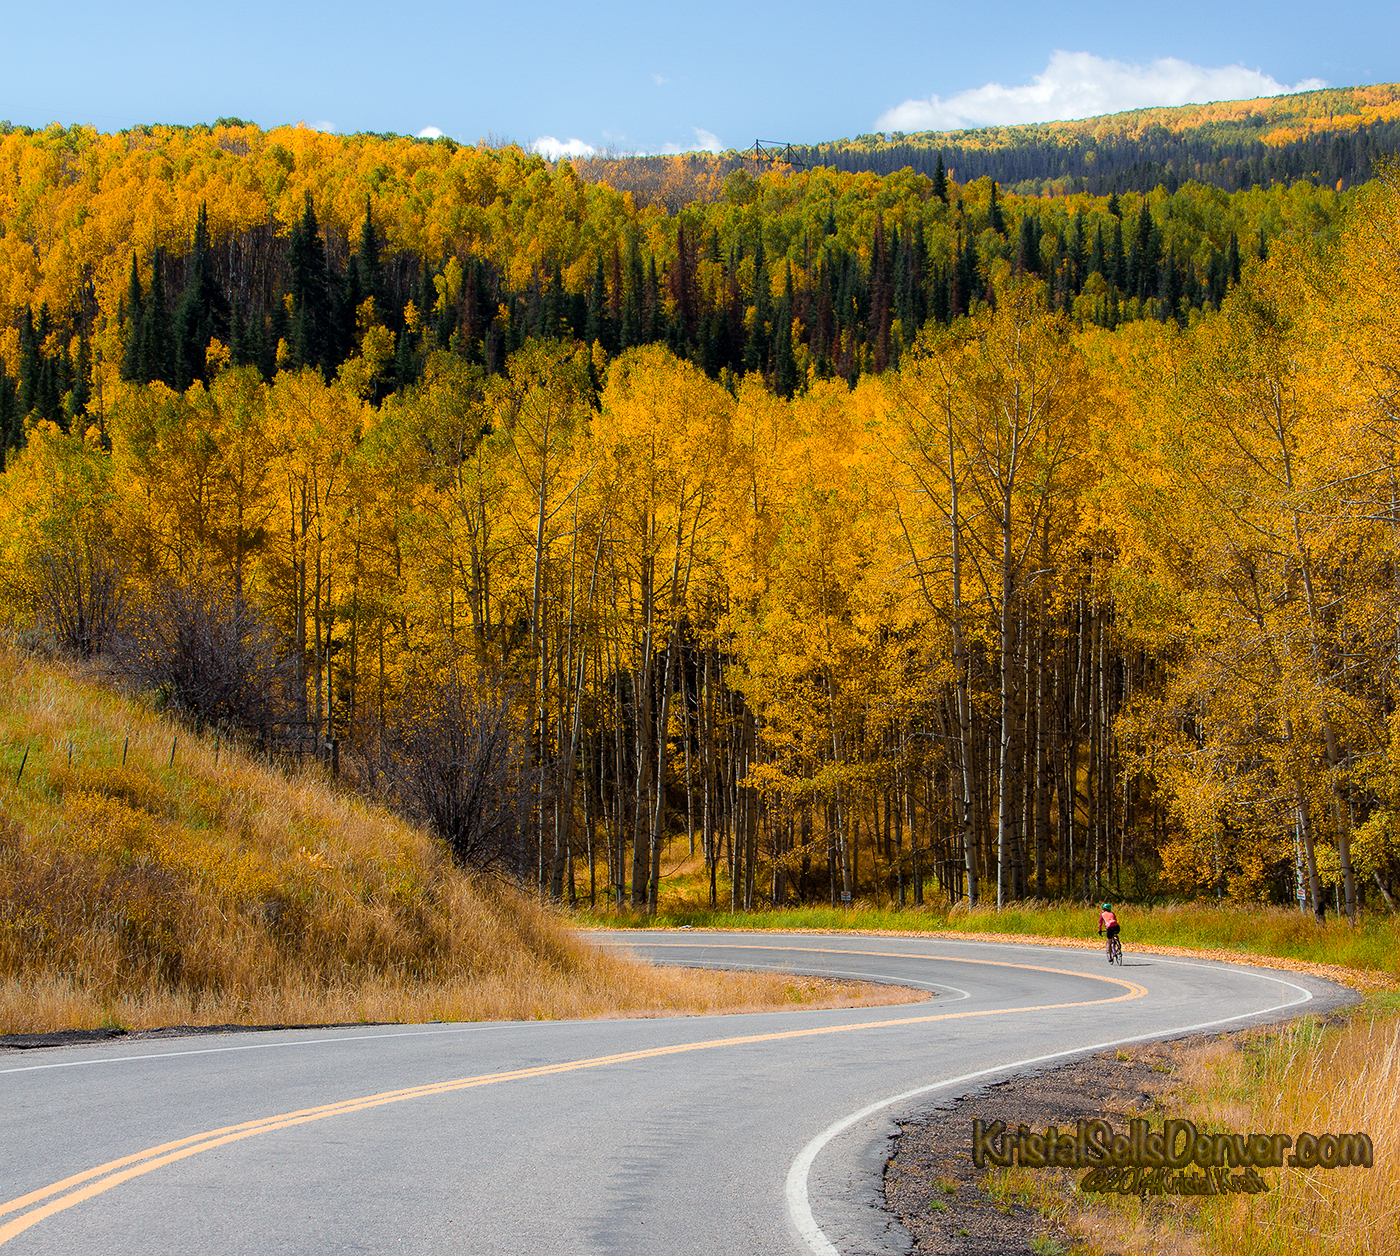 Cycling in the Colorado Fall Season